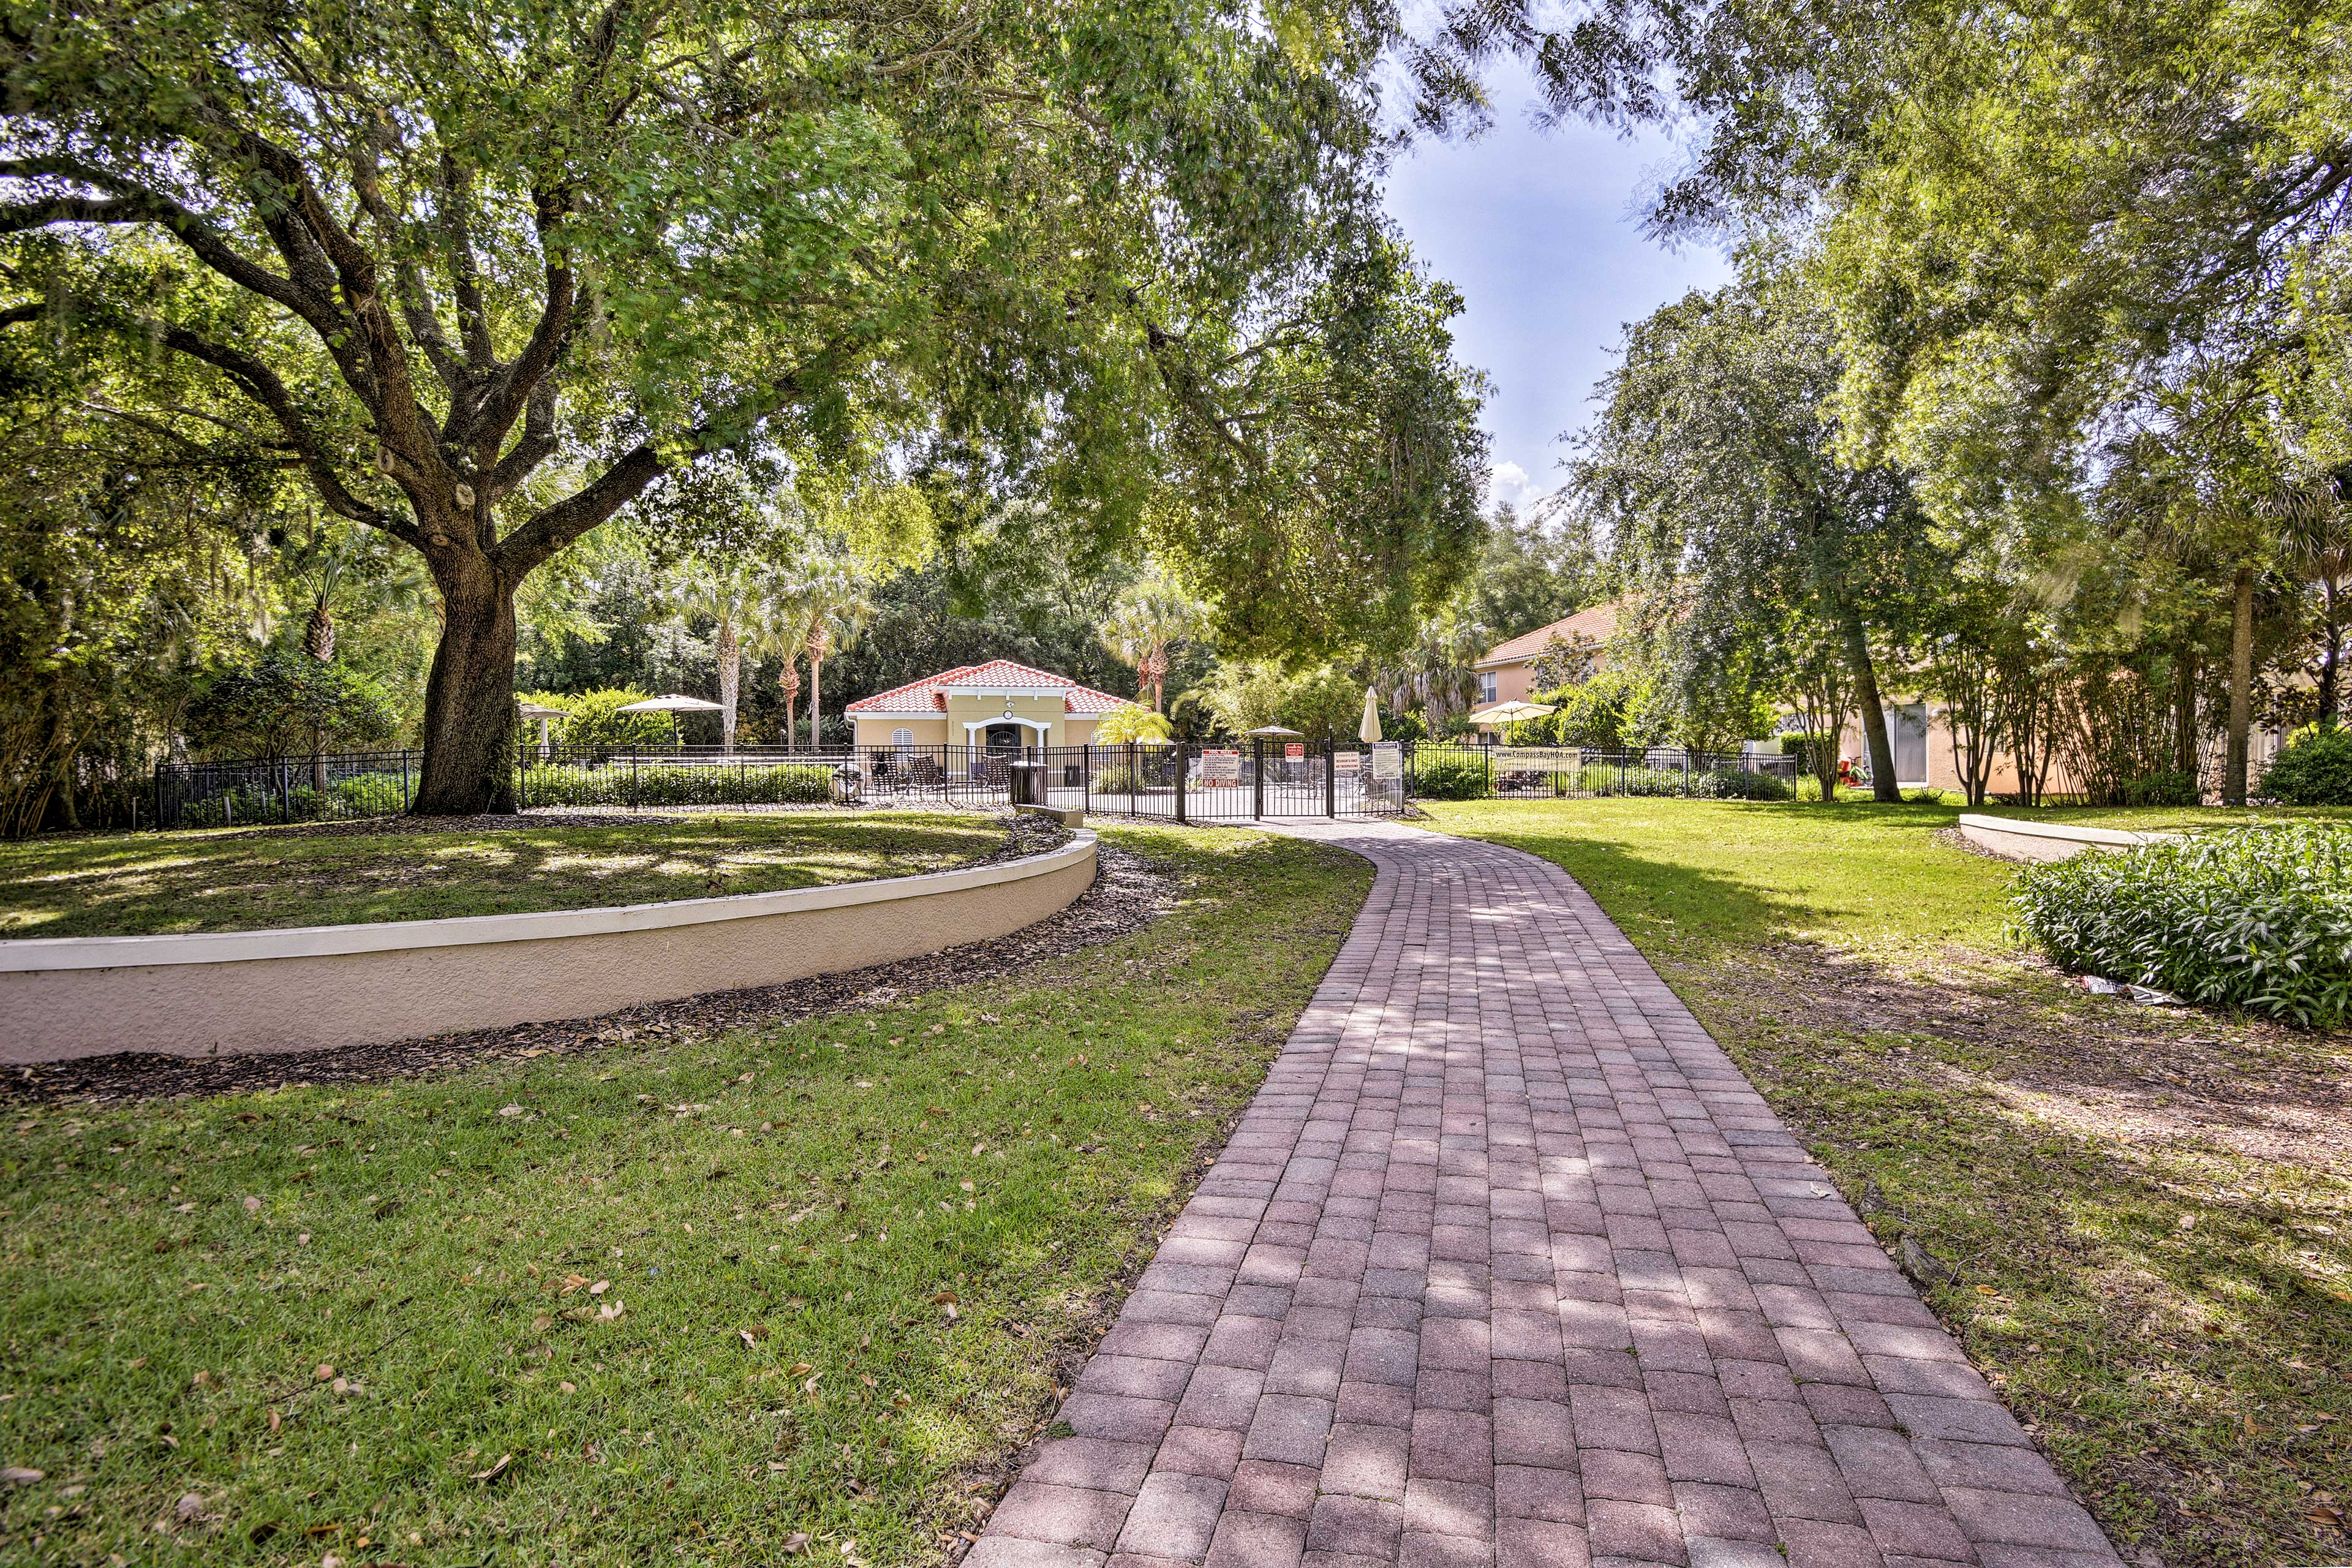 The townhome is located in a safe, gated community.